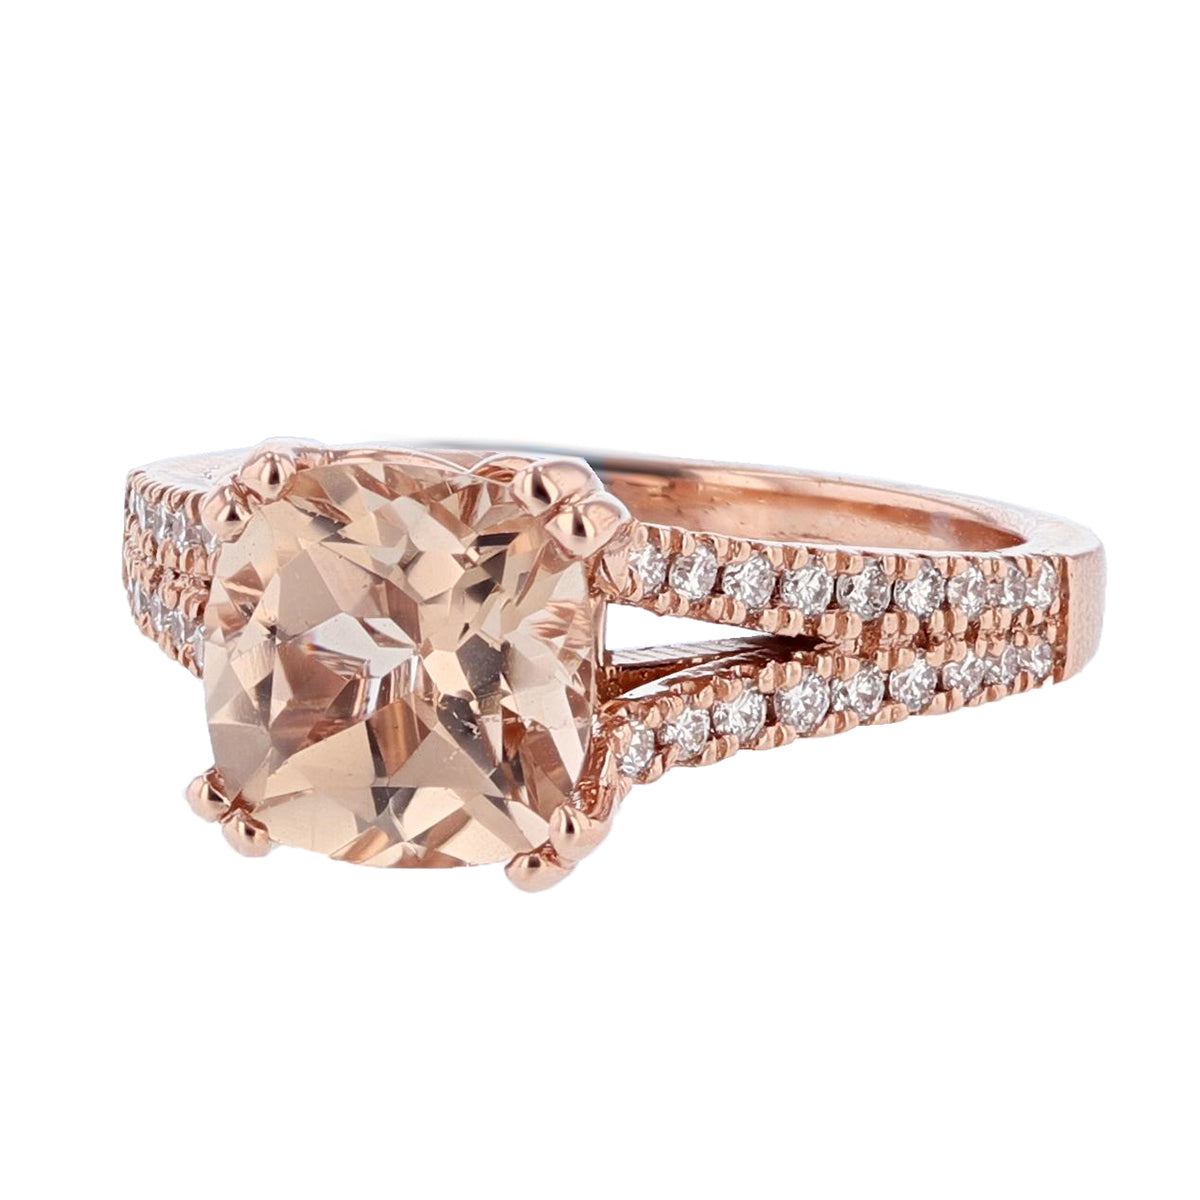 14K Rose Gold 2.08 Carat Cushion Morganite and Diamond Engagement Ring - Nazarelle